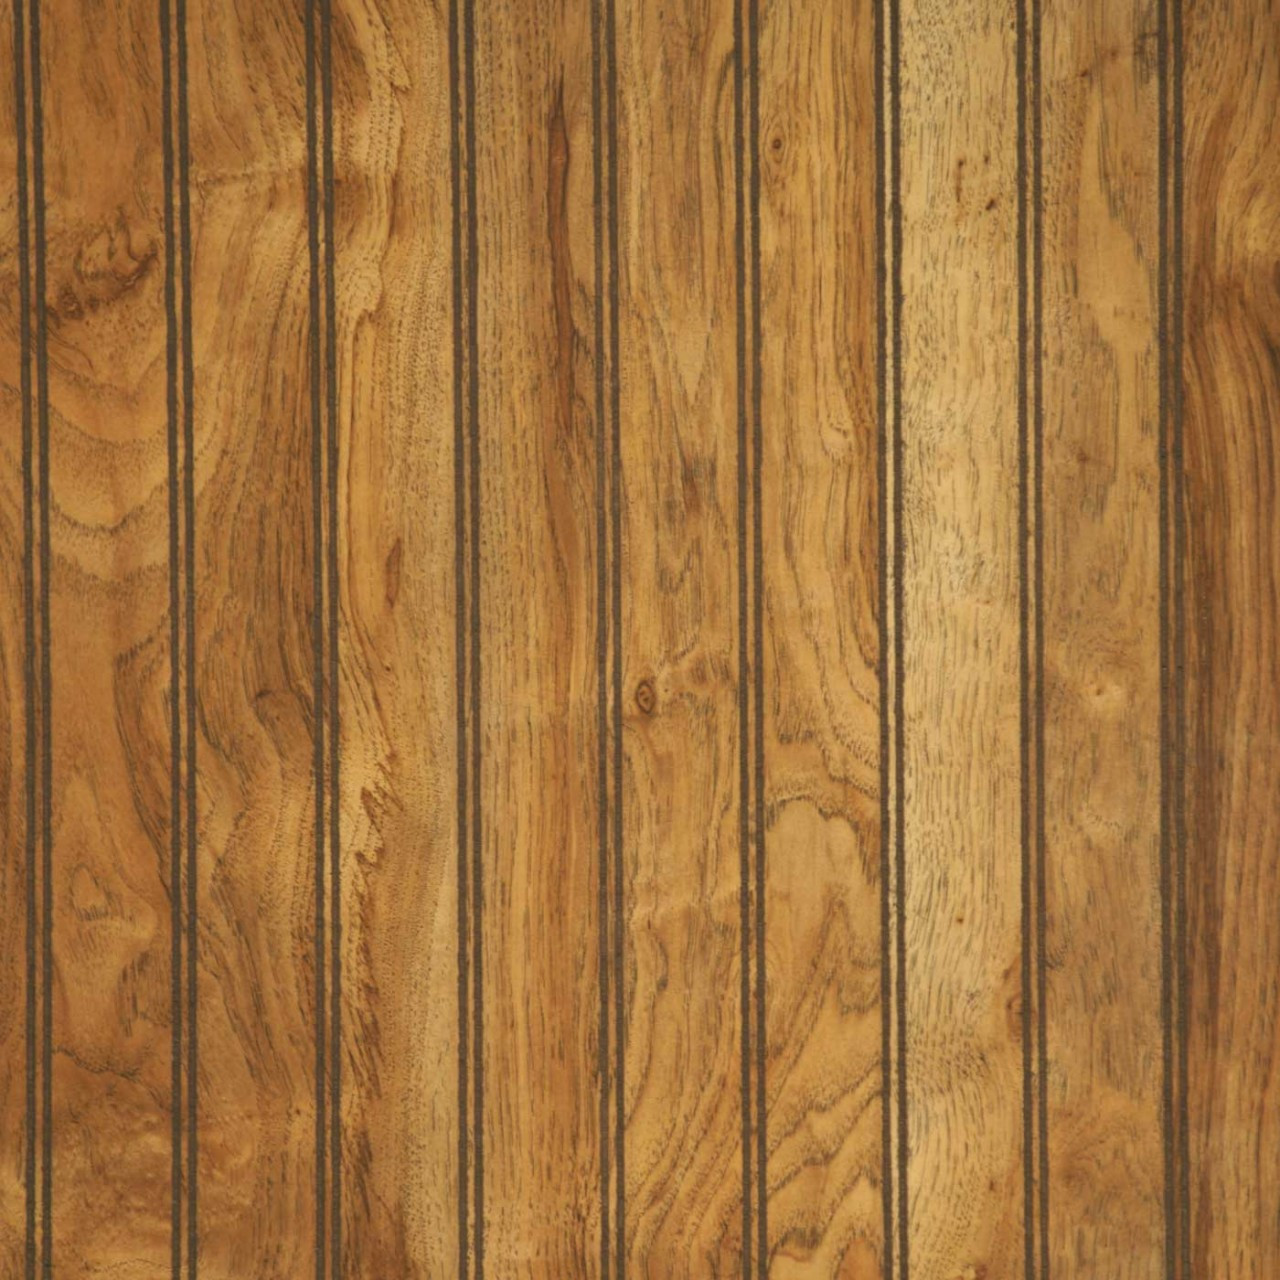 Wood Interior Paneling 4x8 Sheets Myideasbedroom Com